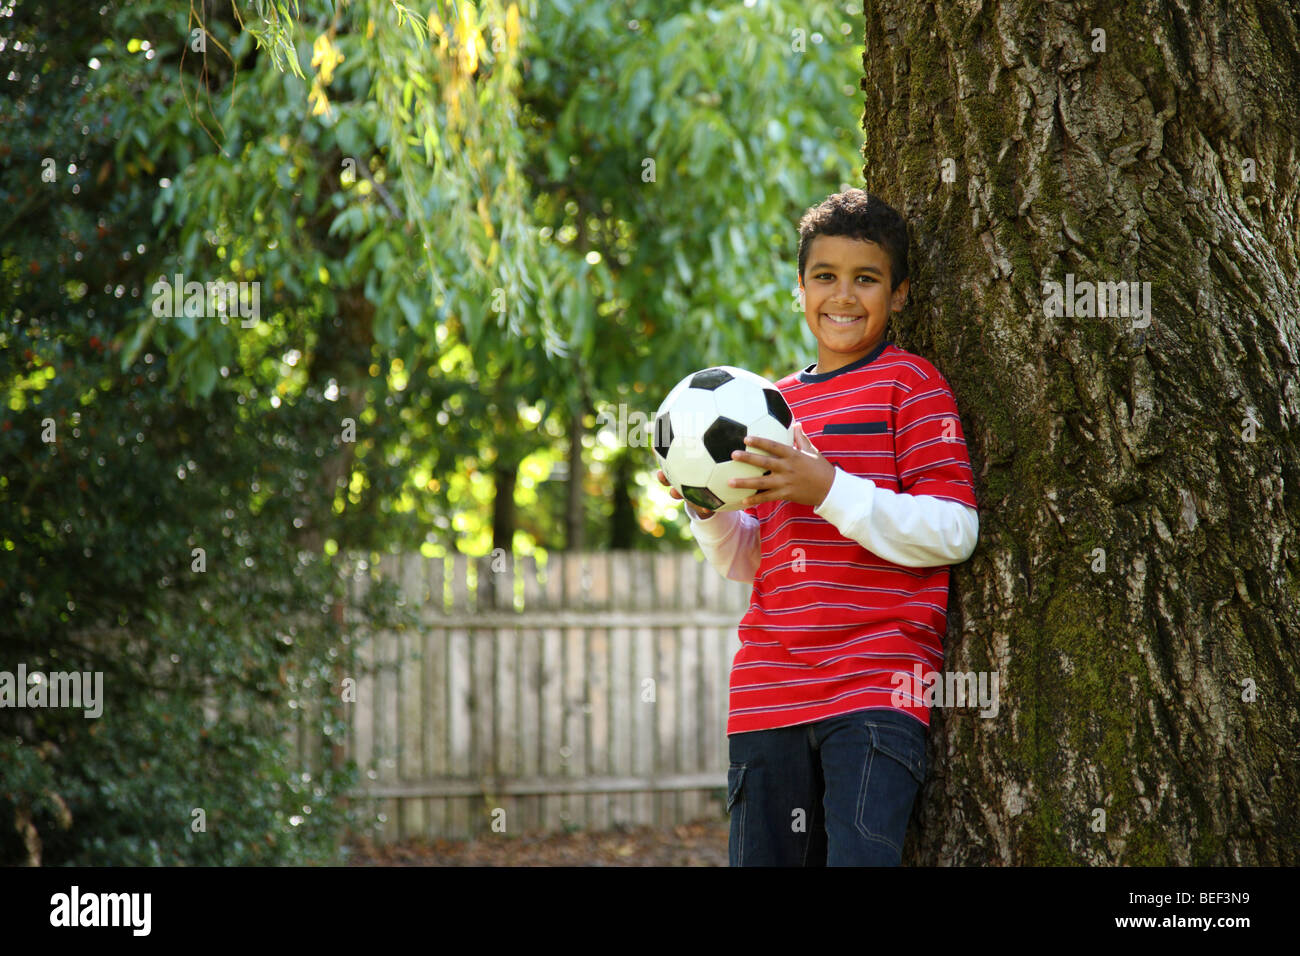 Portrait of boy outdoors with soccer ball - Stock Image